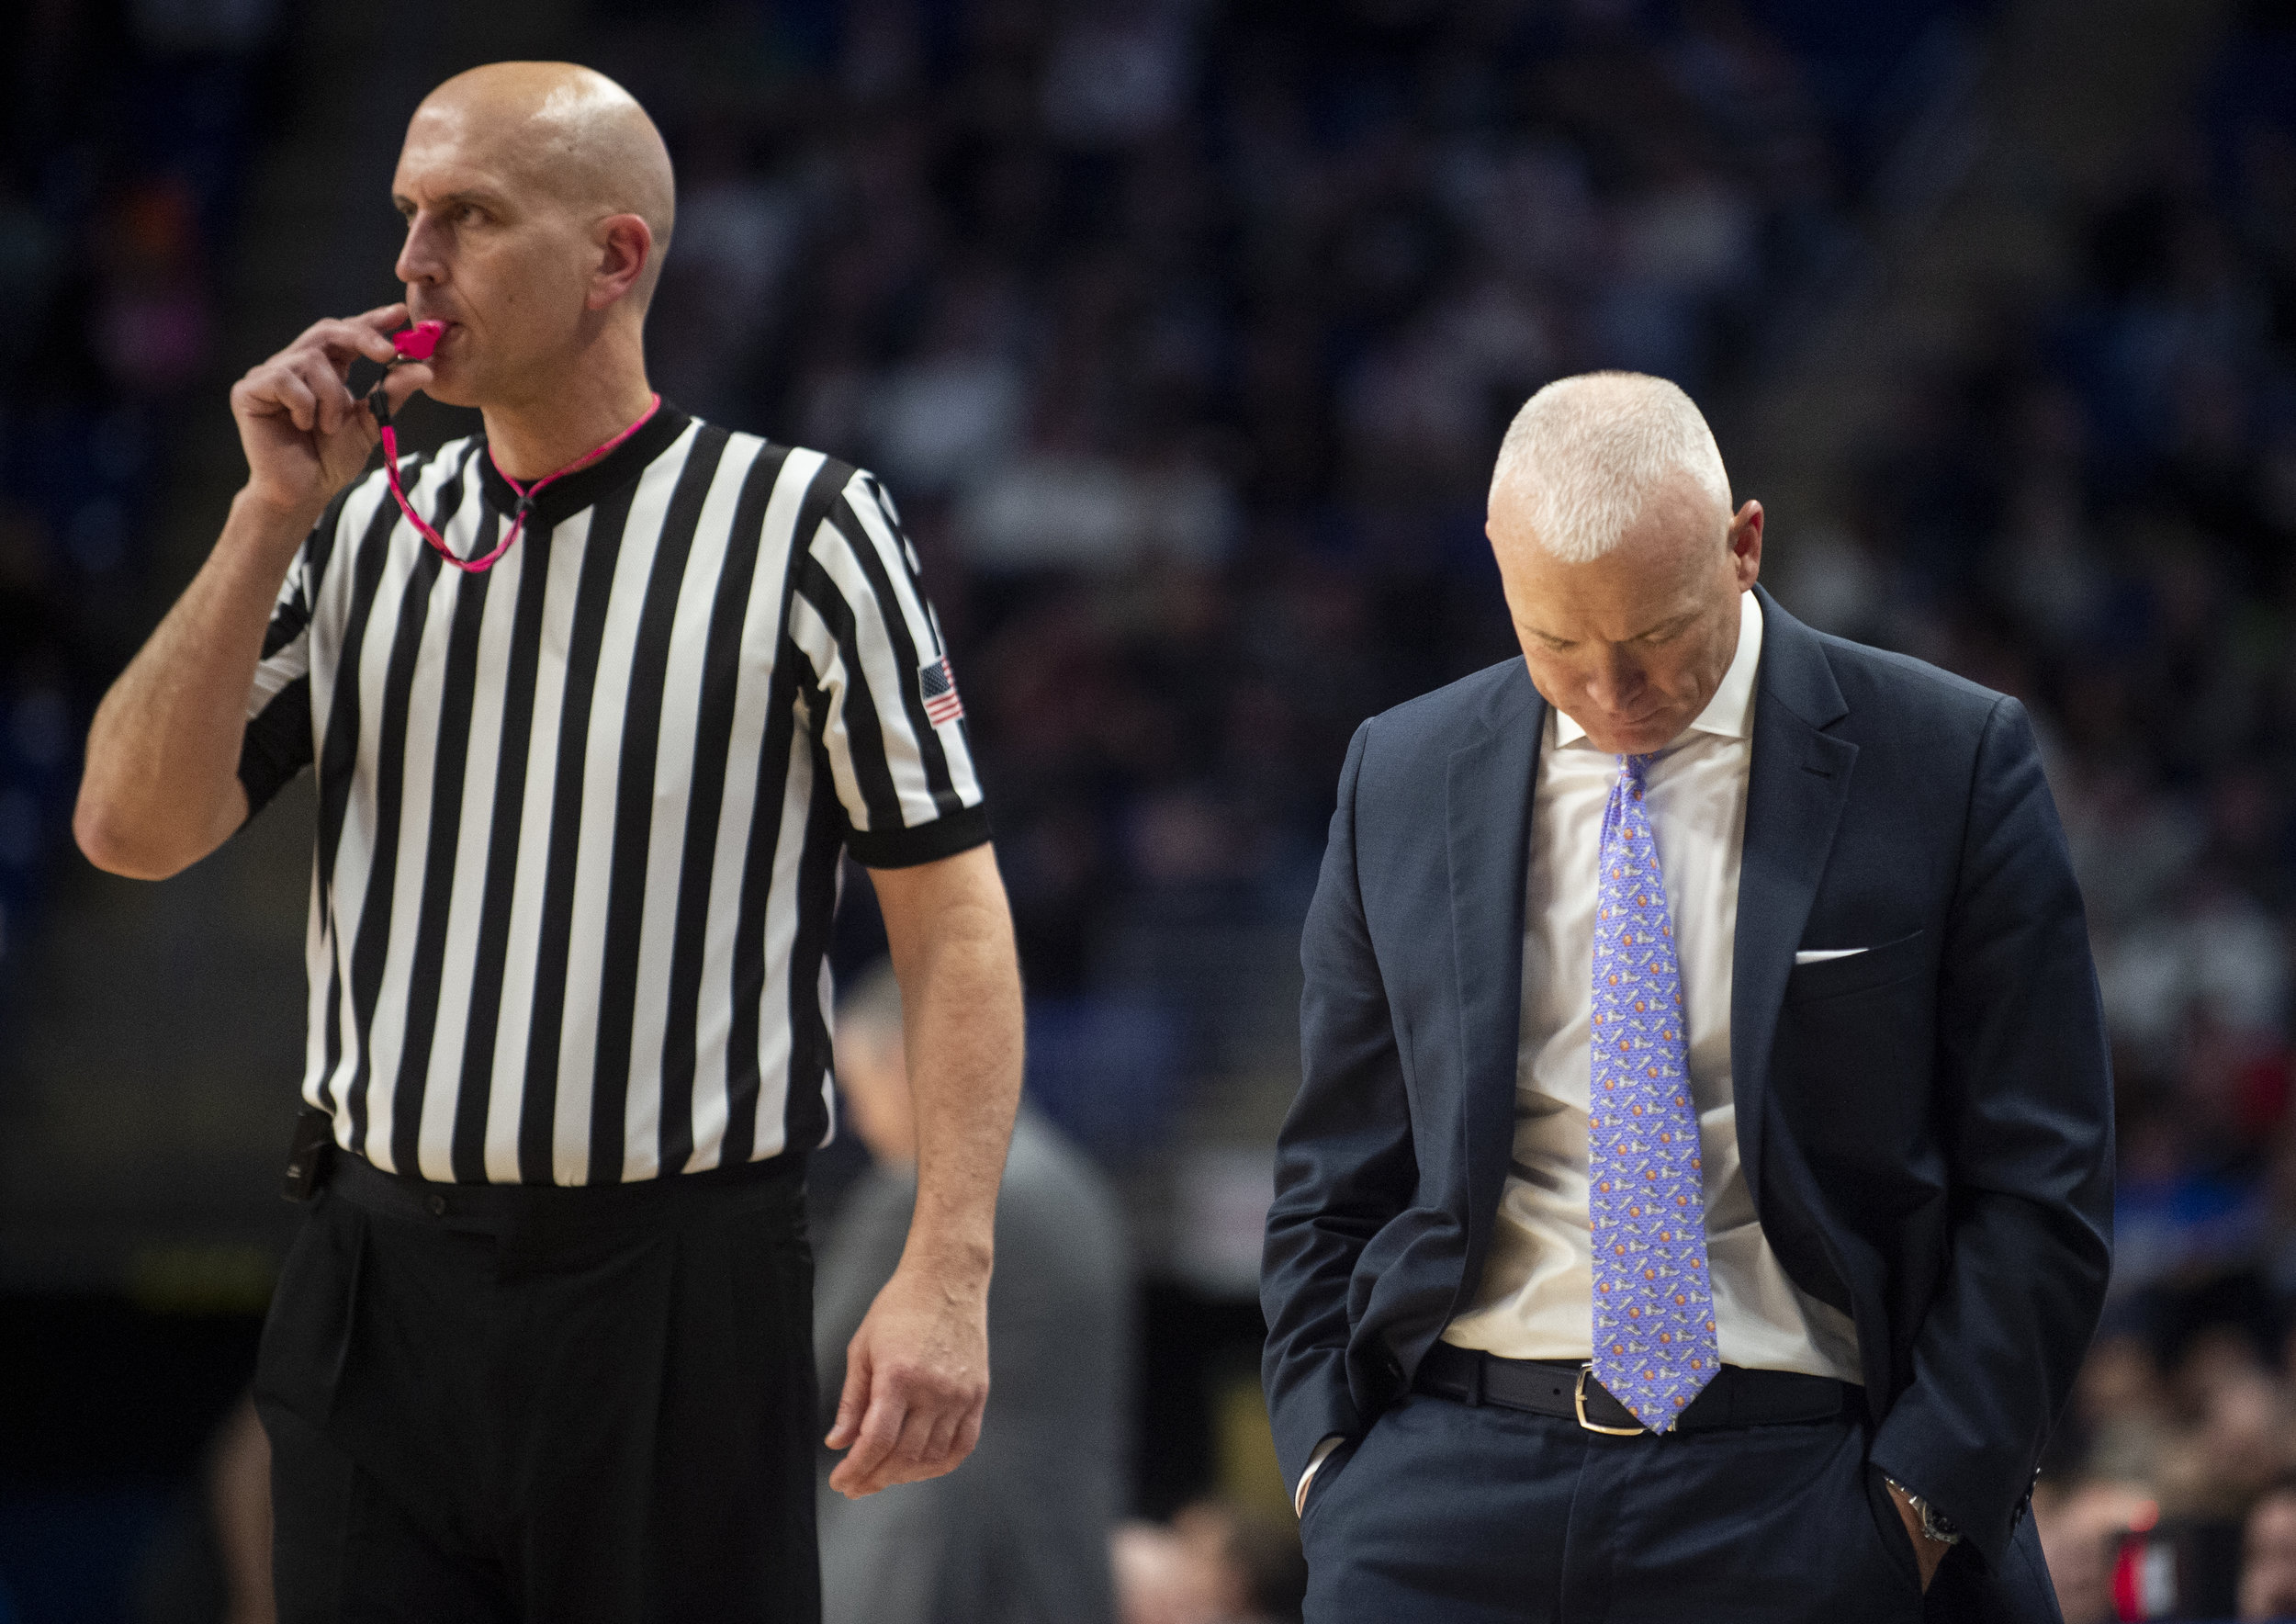 Penn State men's basketball head coach Pat Chambers shakes his head during their game against at the Bryce Jordan Center on Saturday, Jan. 26, 2019. The Nittany lions fall to Rutgers 64-60 and stay winless in conference play extending their losing streak to 9 games. | Photo by: Noah Riffe